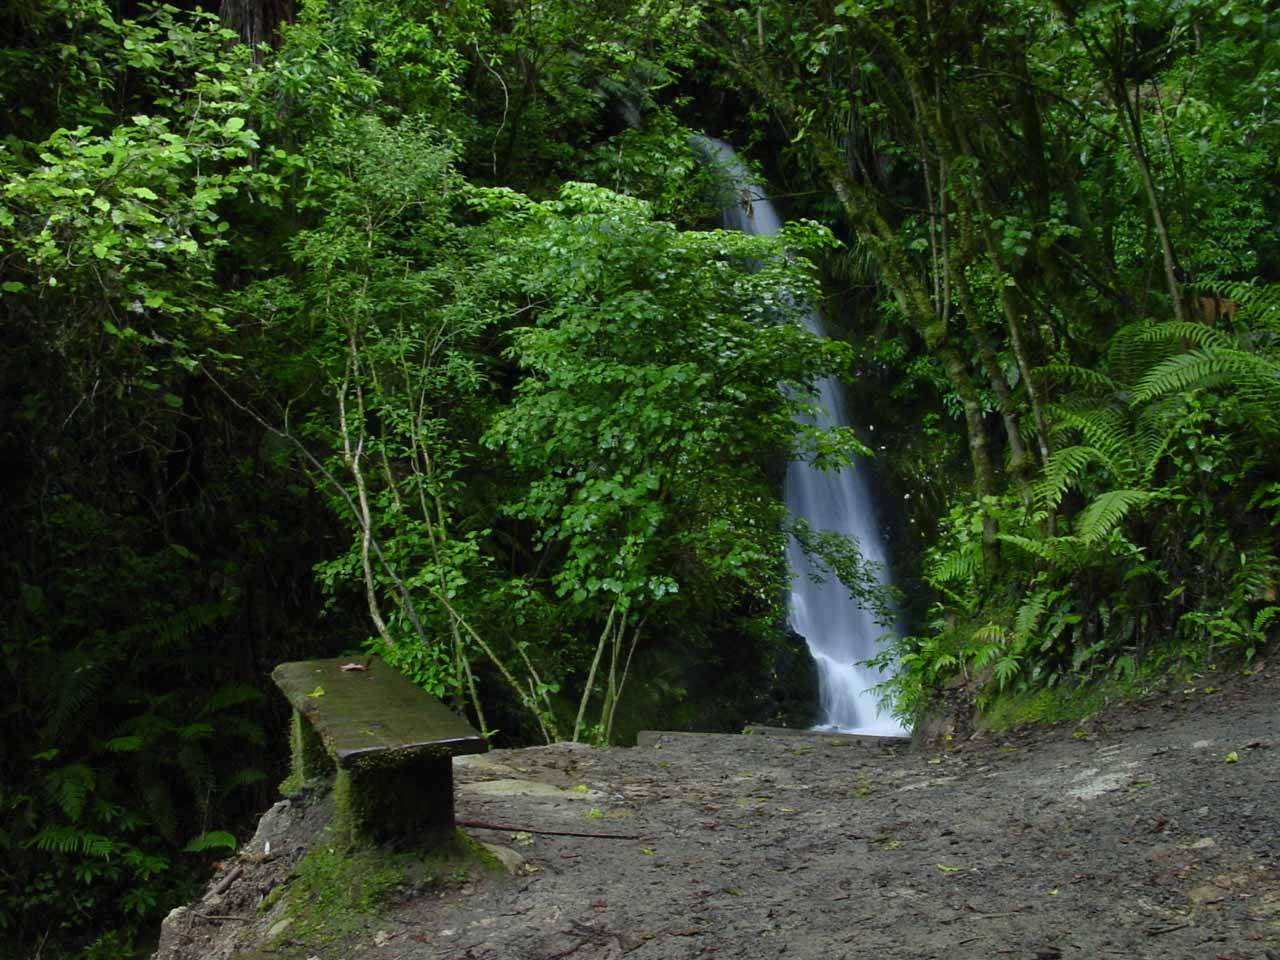 Contextual view of Marshall Falls with the bench to chill out on